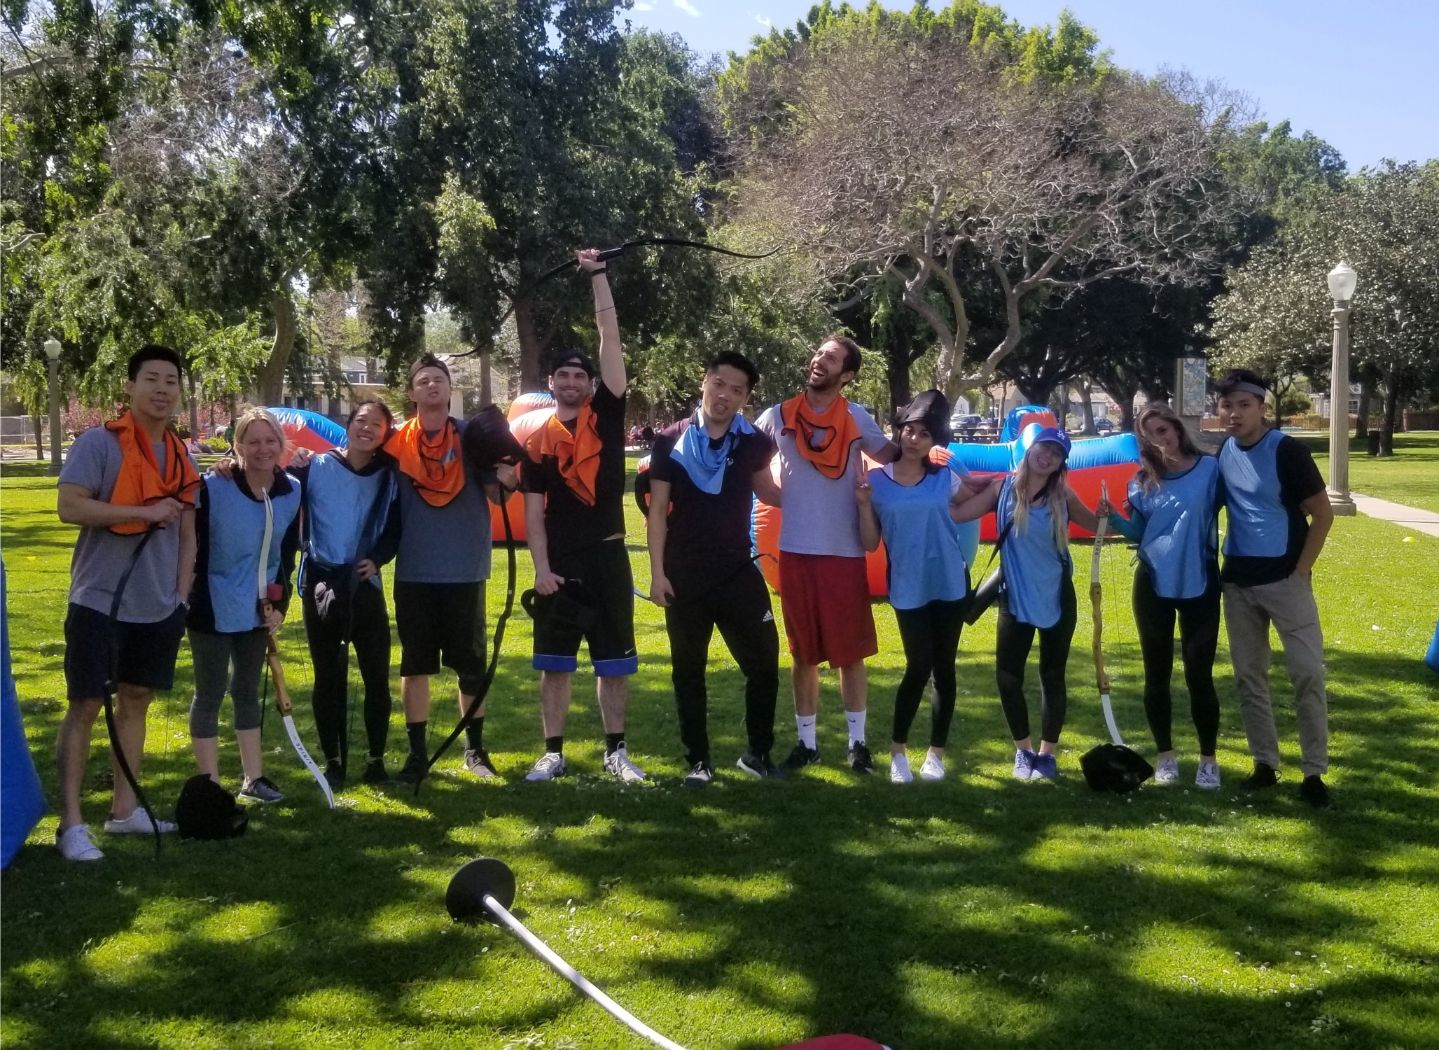 Archery Tag in Newport Beach